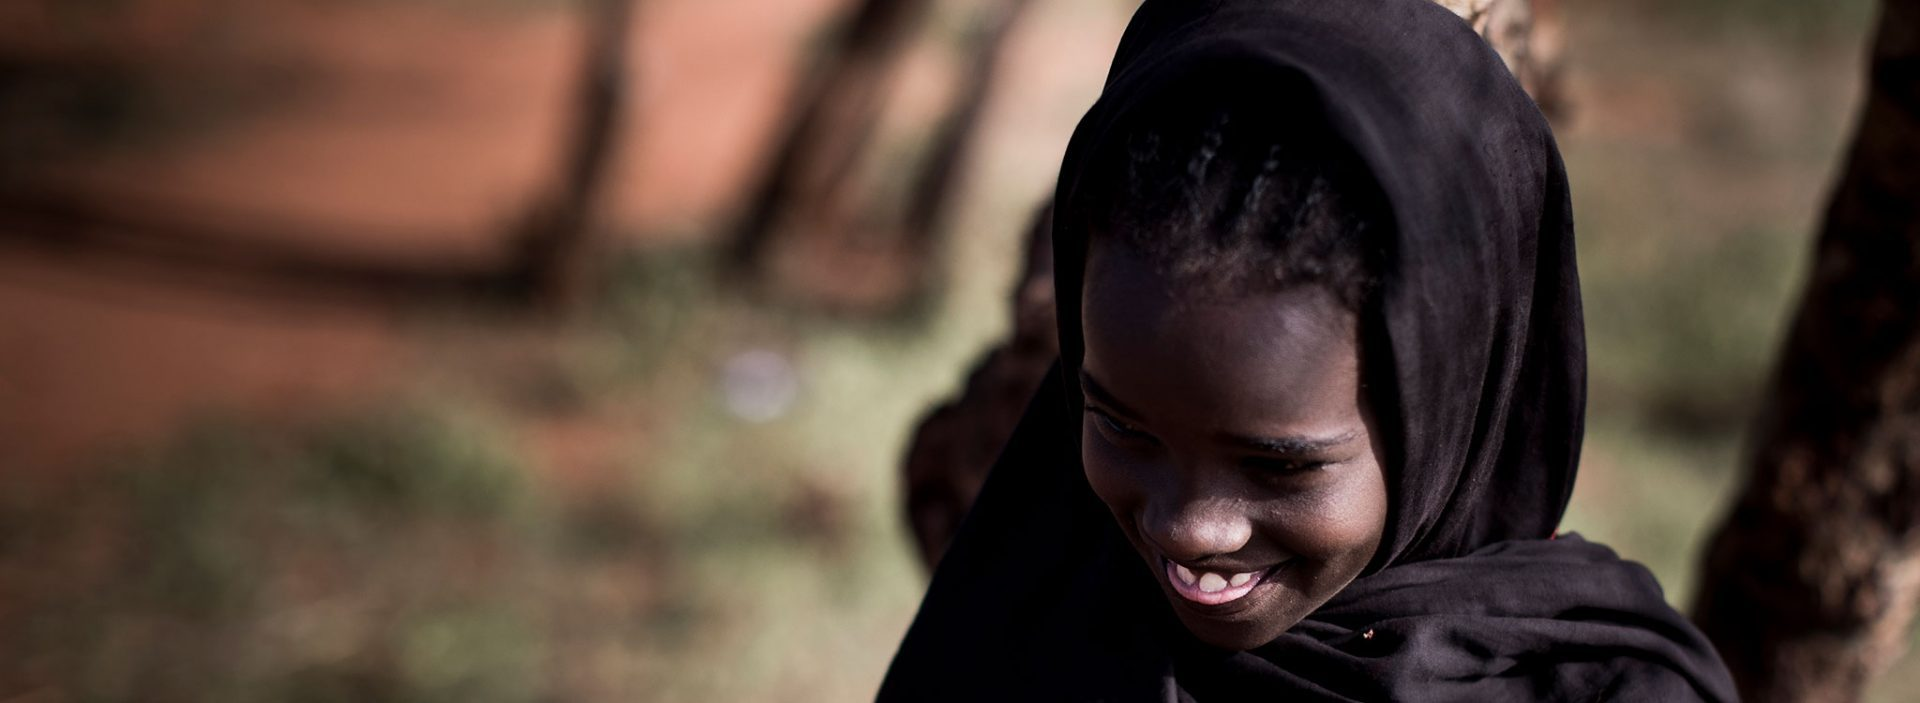 A girl sticking her tongue out in Ethiopia.